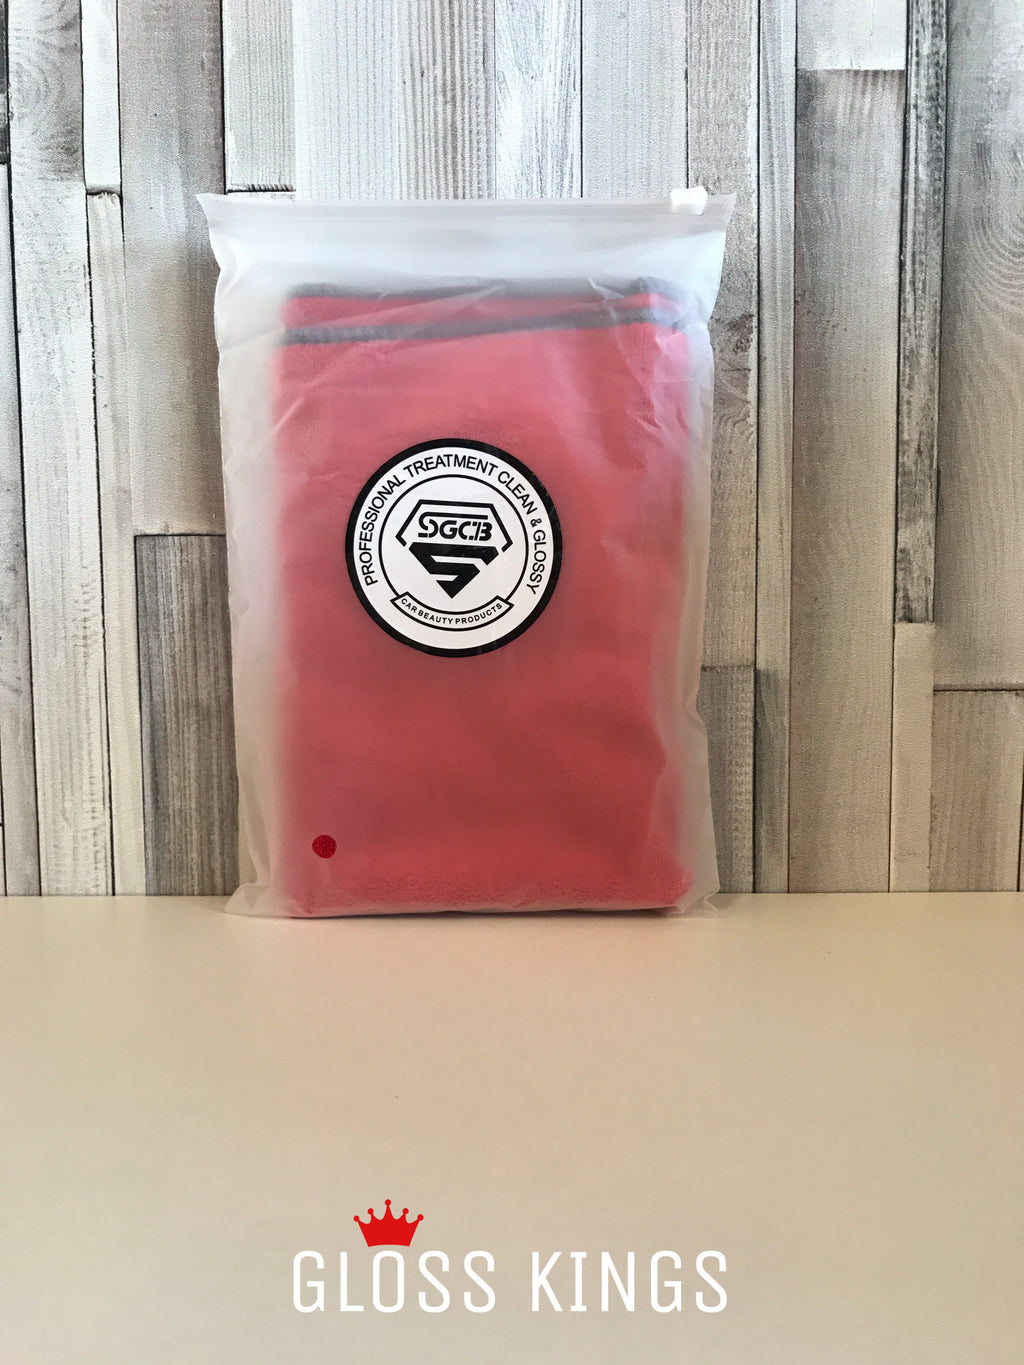 Gloss Kings - SGCB Standard Micro Fibre Cloth 40 x 40 (red) - GlossKings